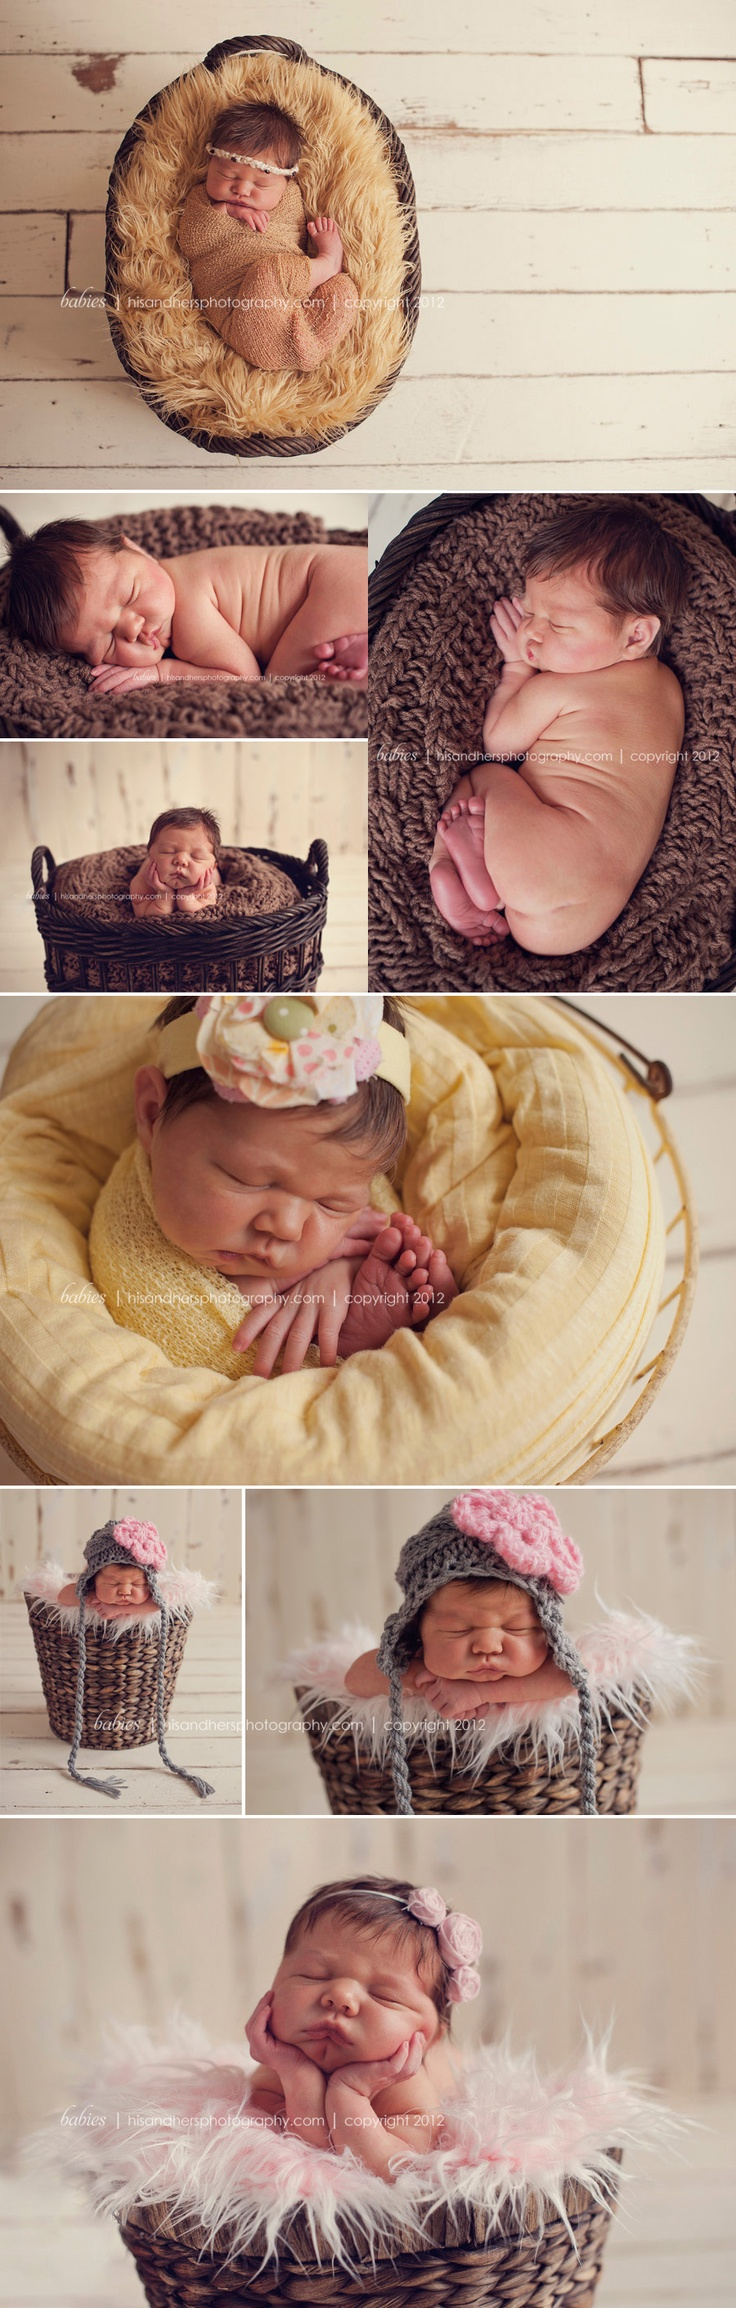 Newborn | Des Moines, Iowa Photographer, Darcy Milder | His & Hers